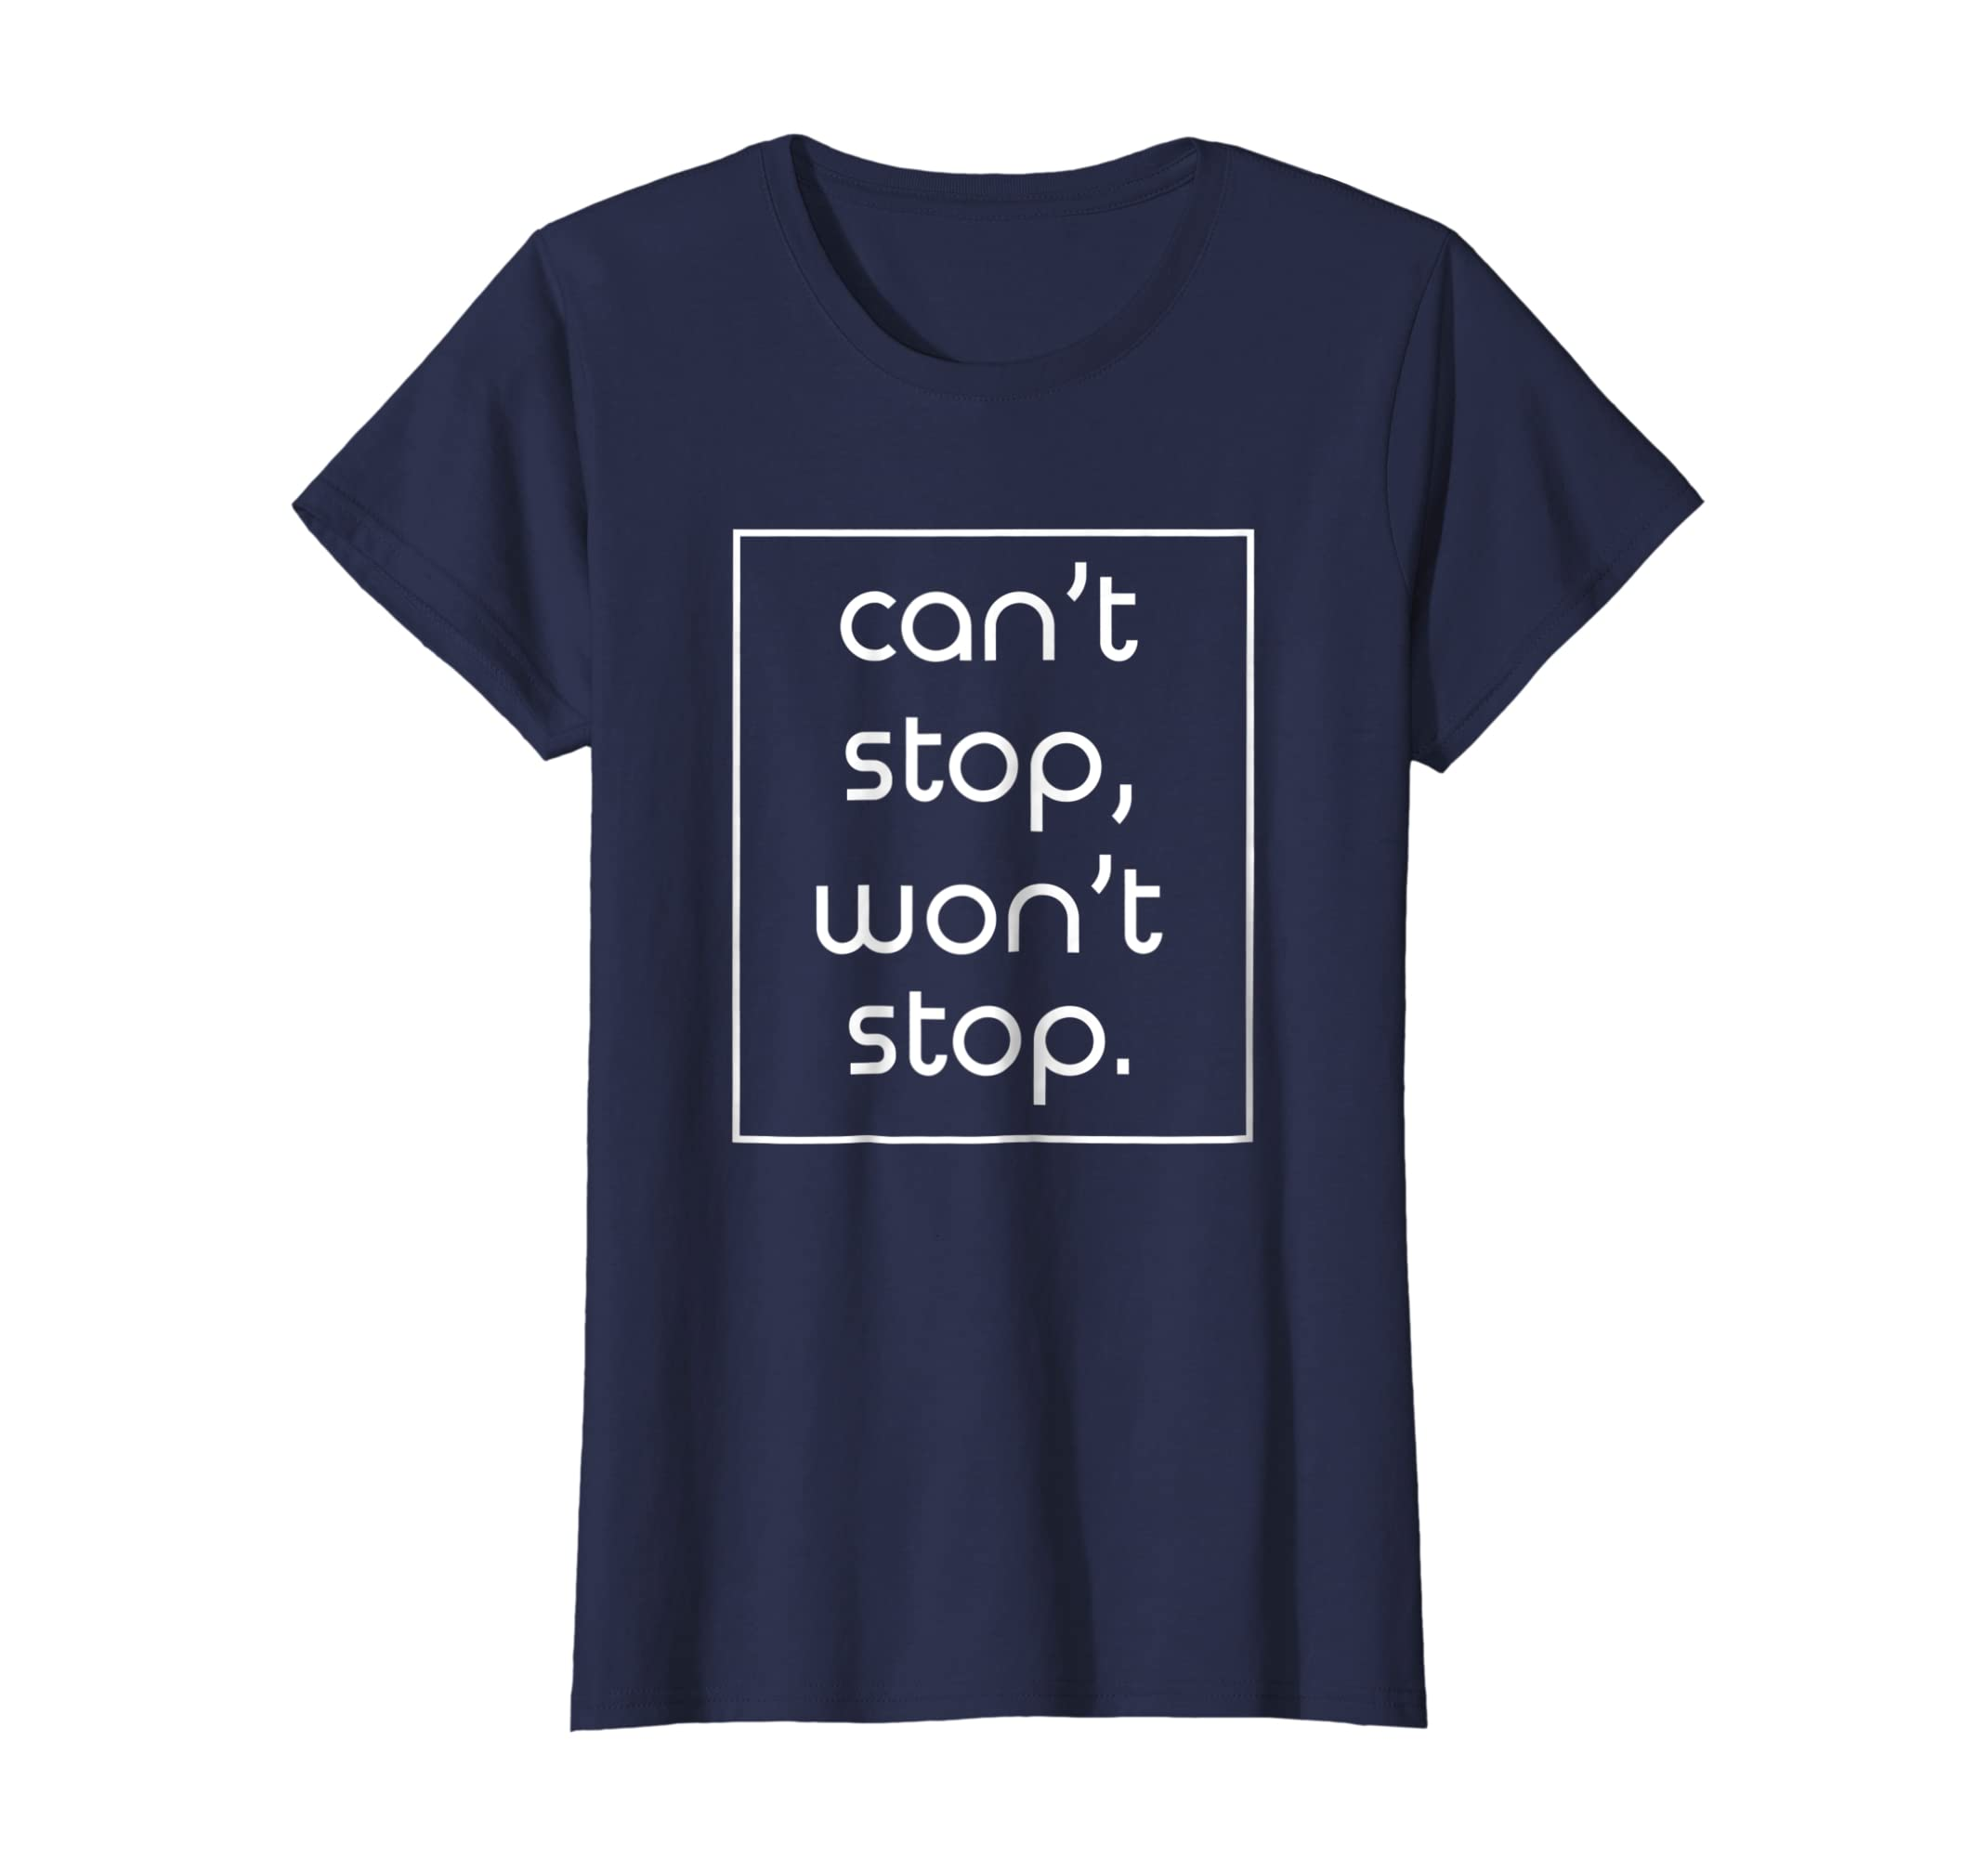 5bf7b0acd Amazon.com: Cant Stop Wont Stop T-Shirt Funny Sarcasm Joke Gift Tee:  Clothing